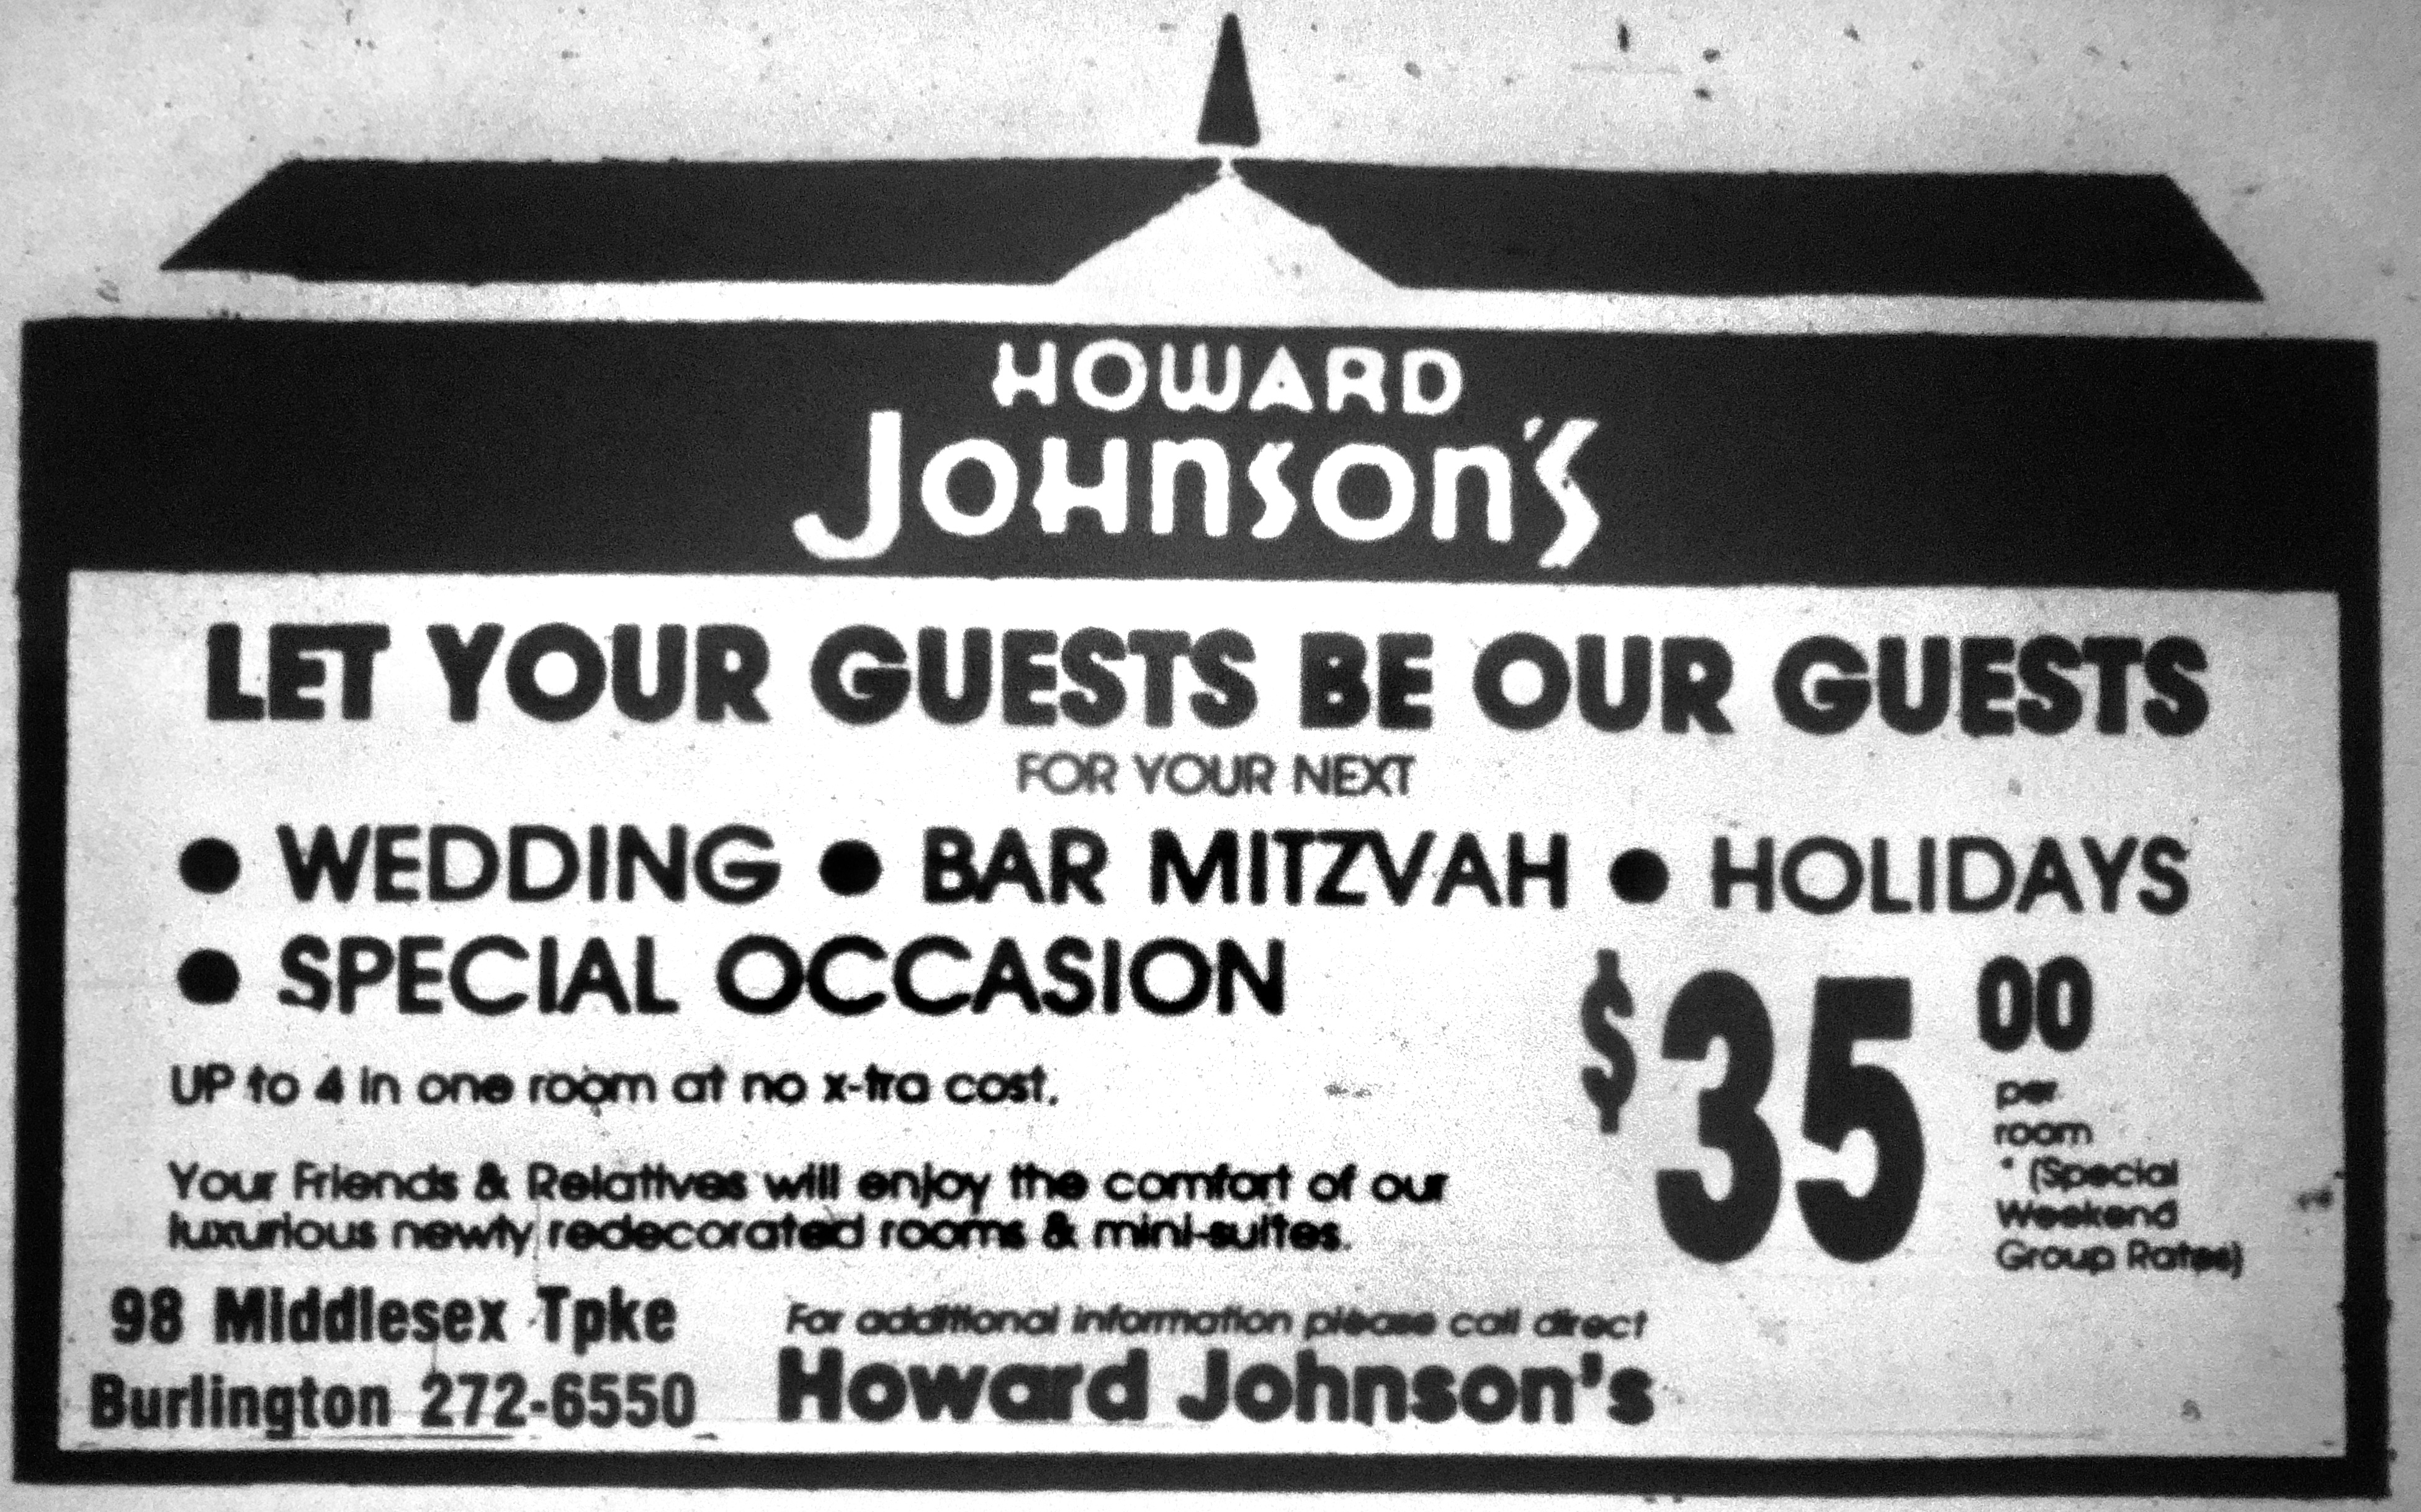 Howard Johnson's, Burlington MA